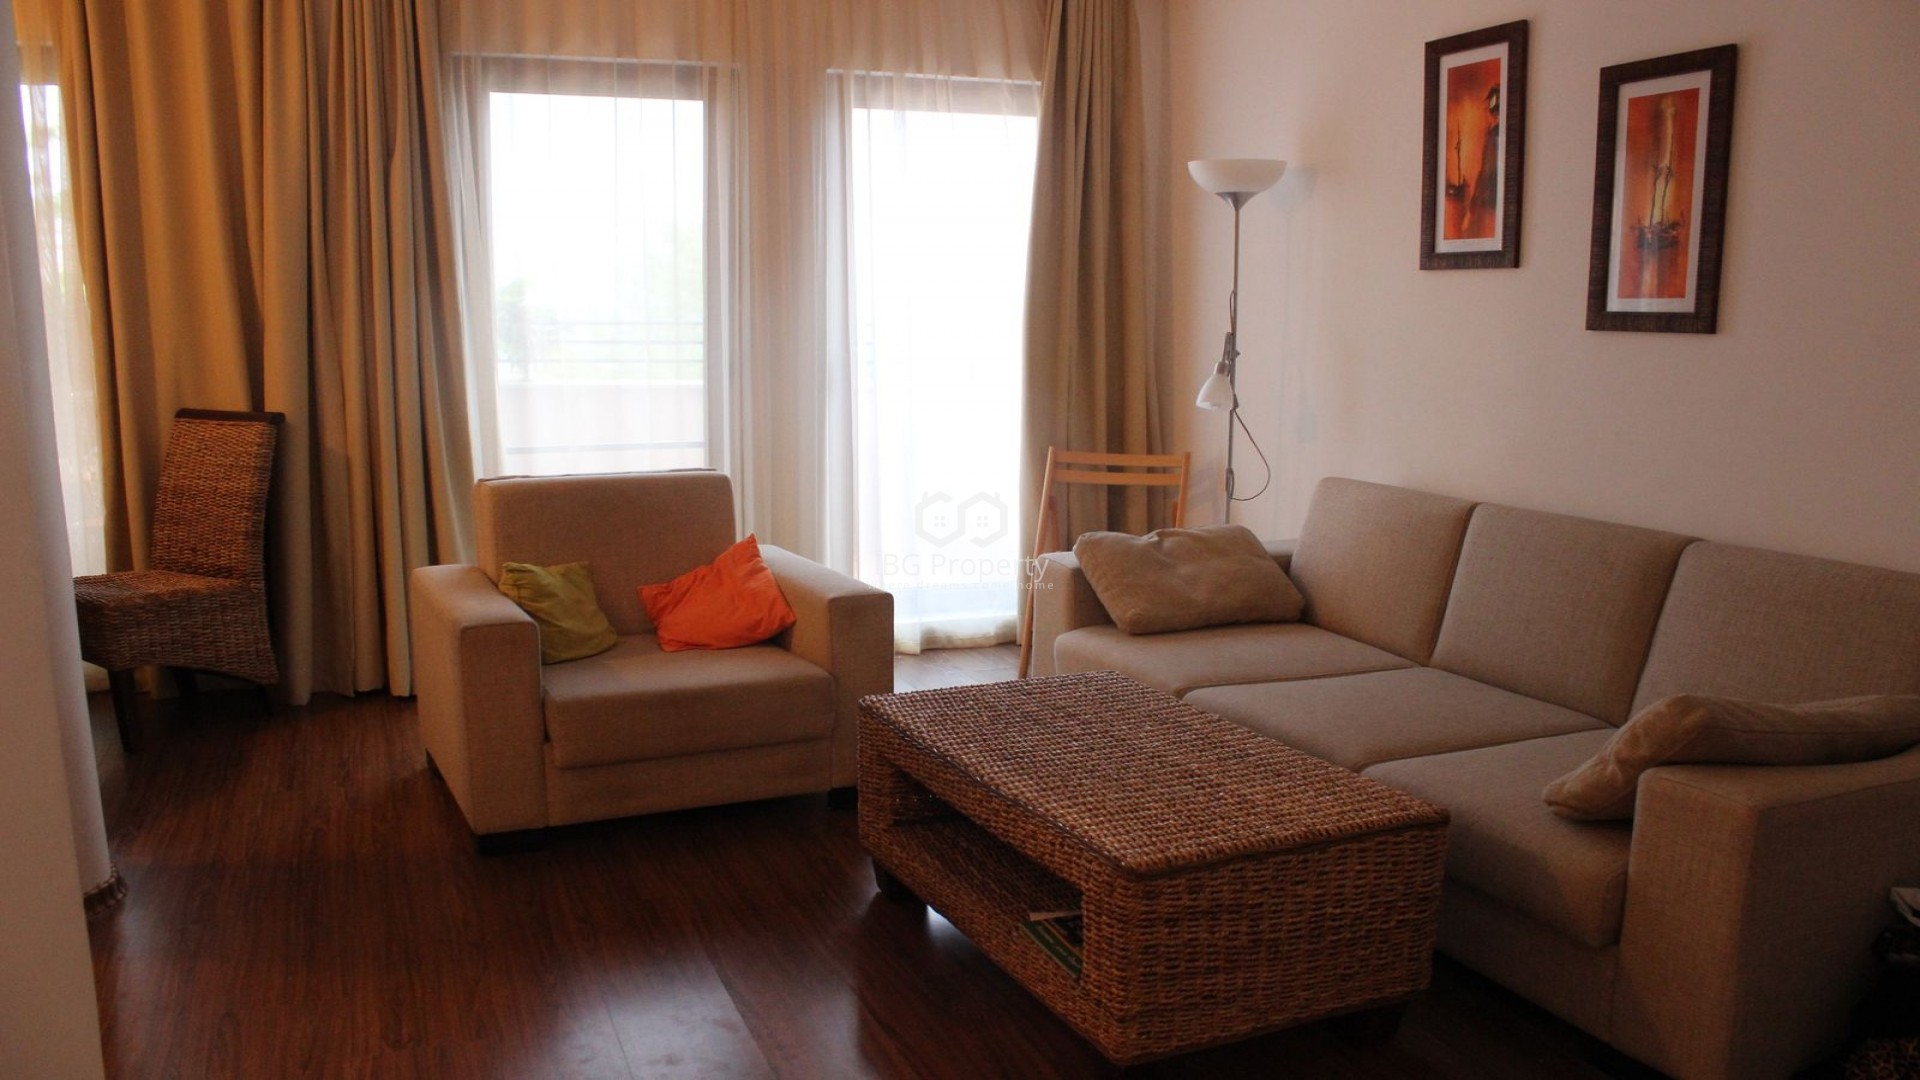 Two bedroom apartment Akheloy 91 m2